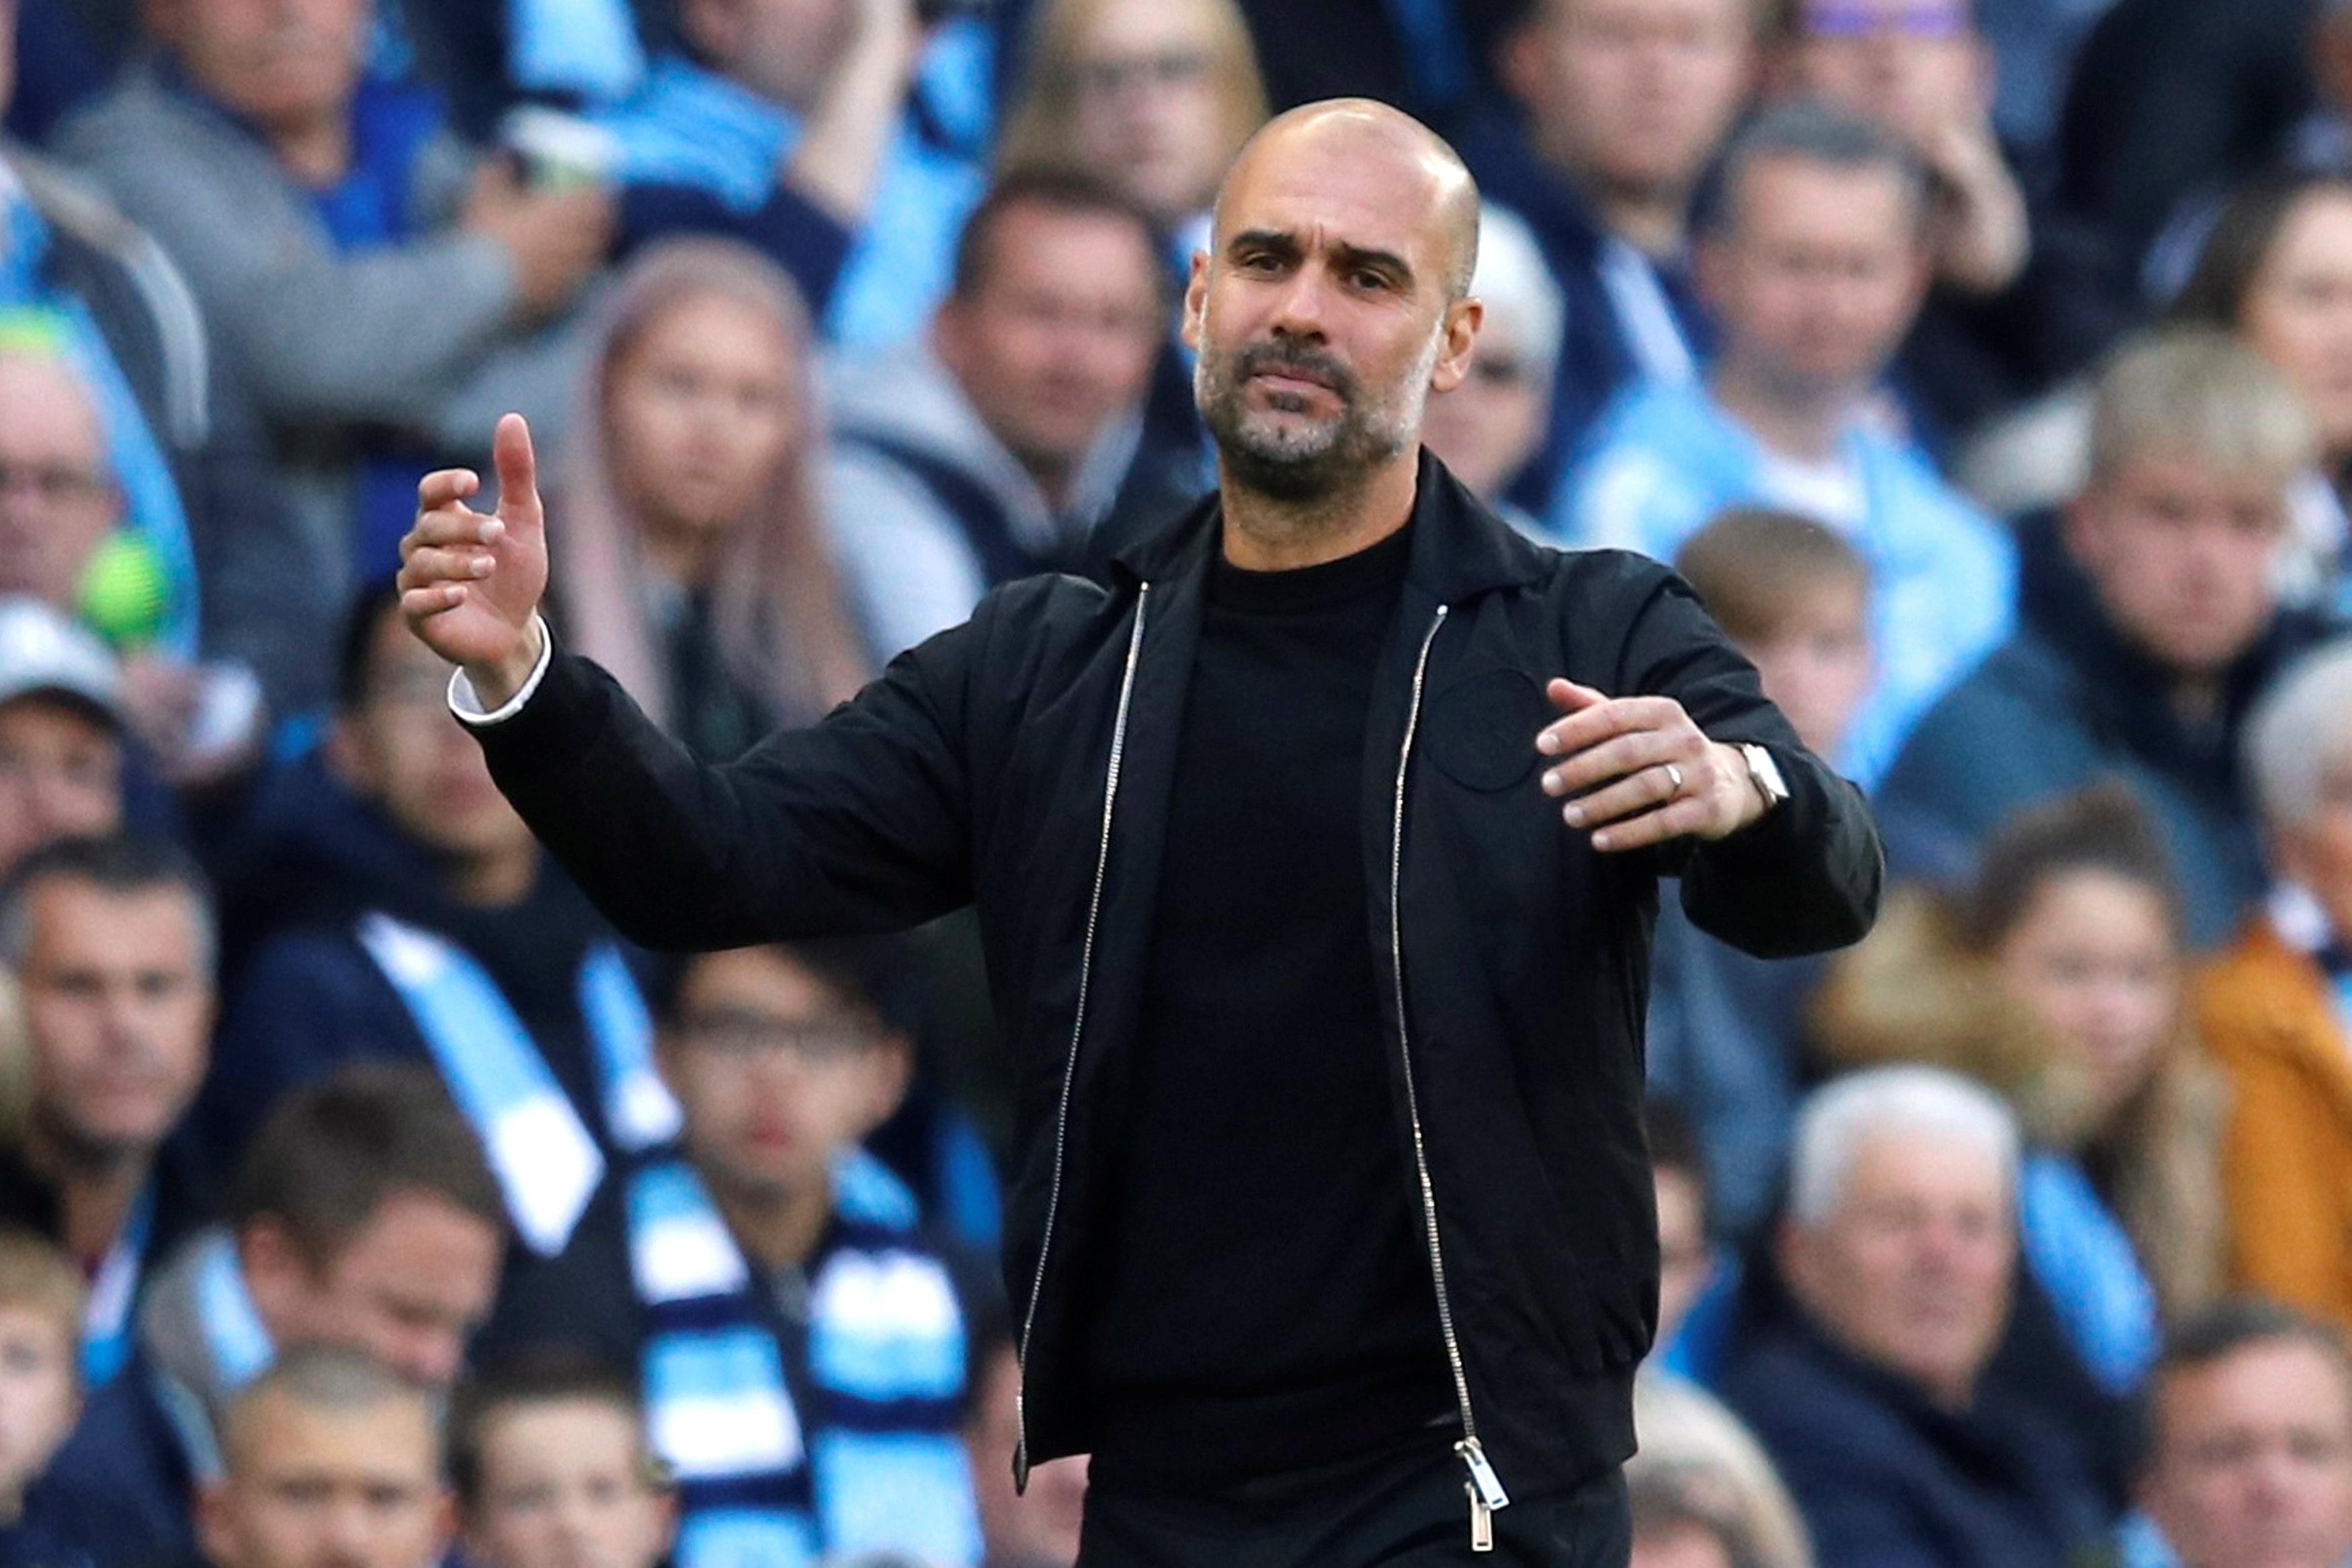 Pep's angry face